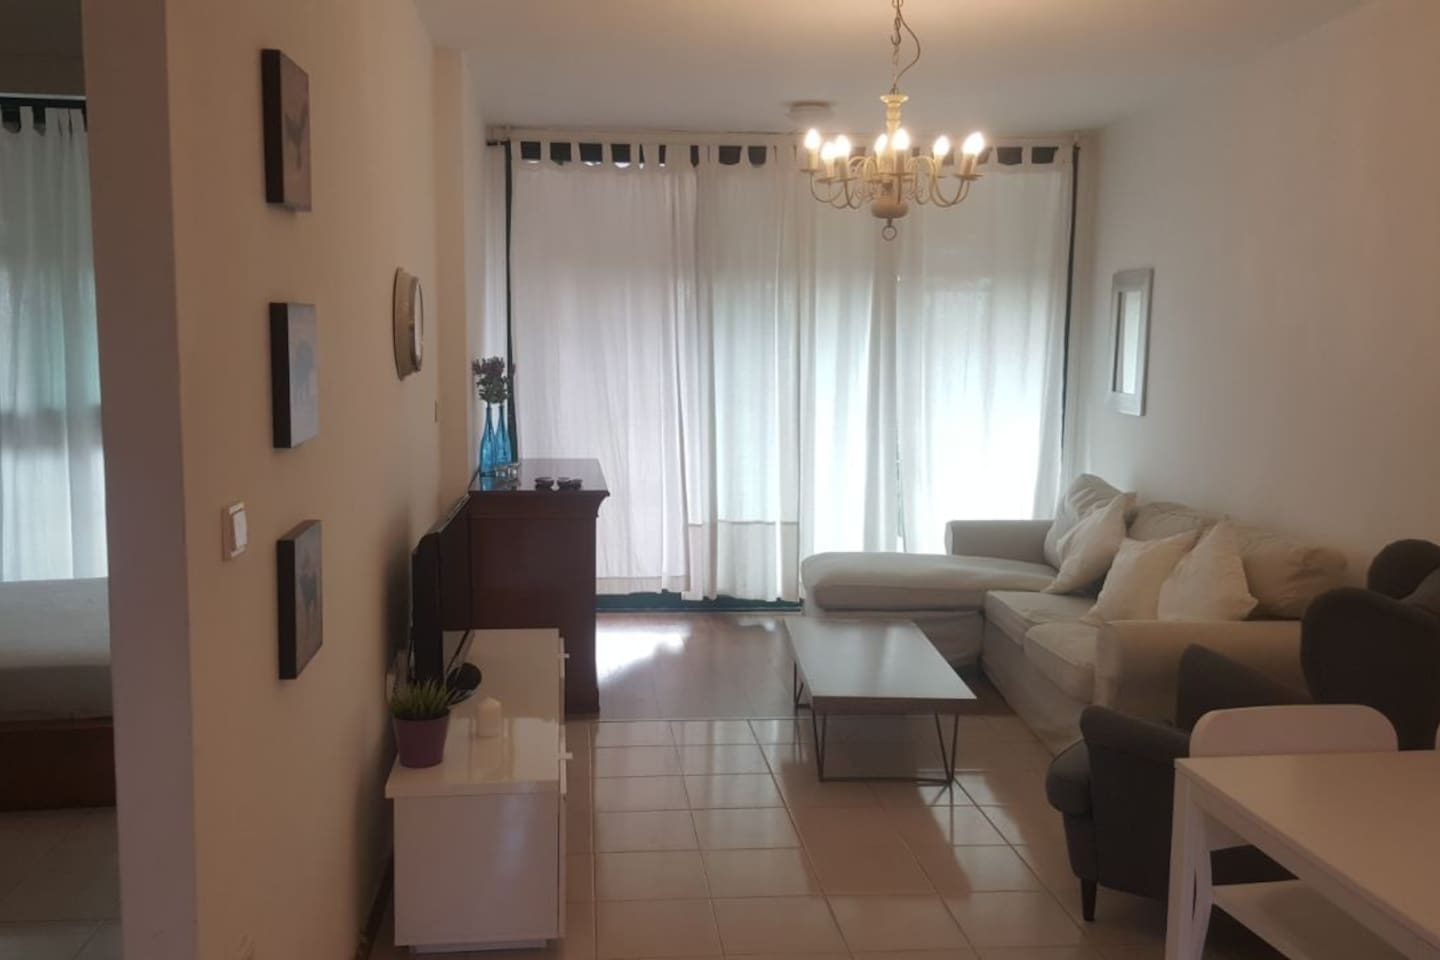 Apartment Great 2 BR Flat right next to the sea in caesarea photo 25977301